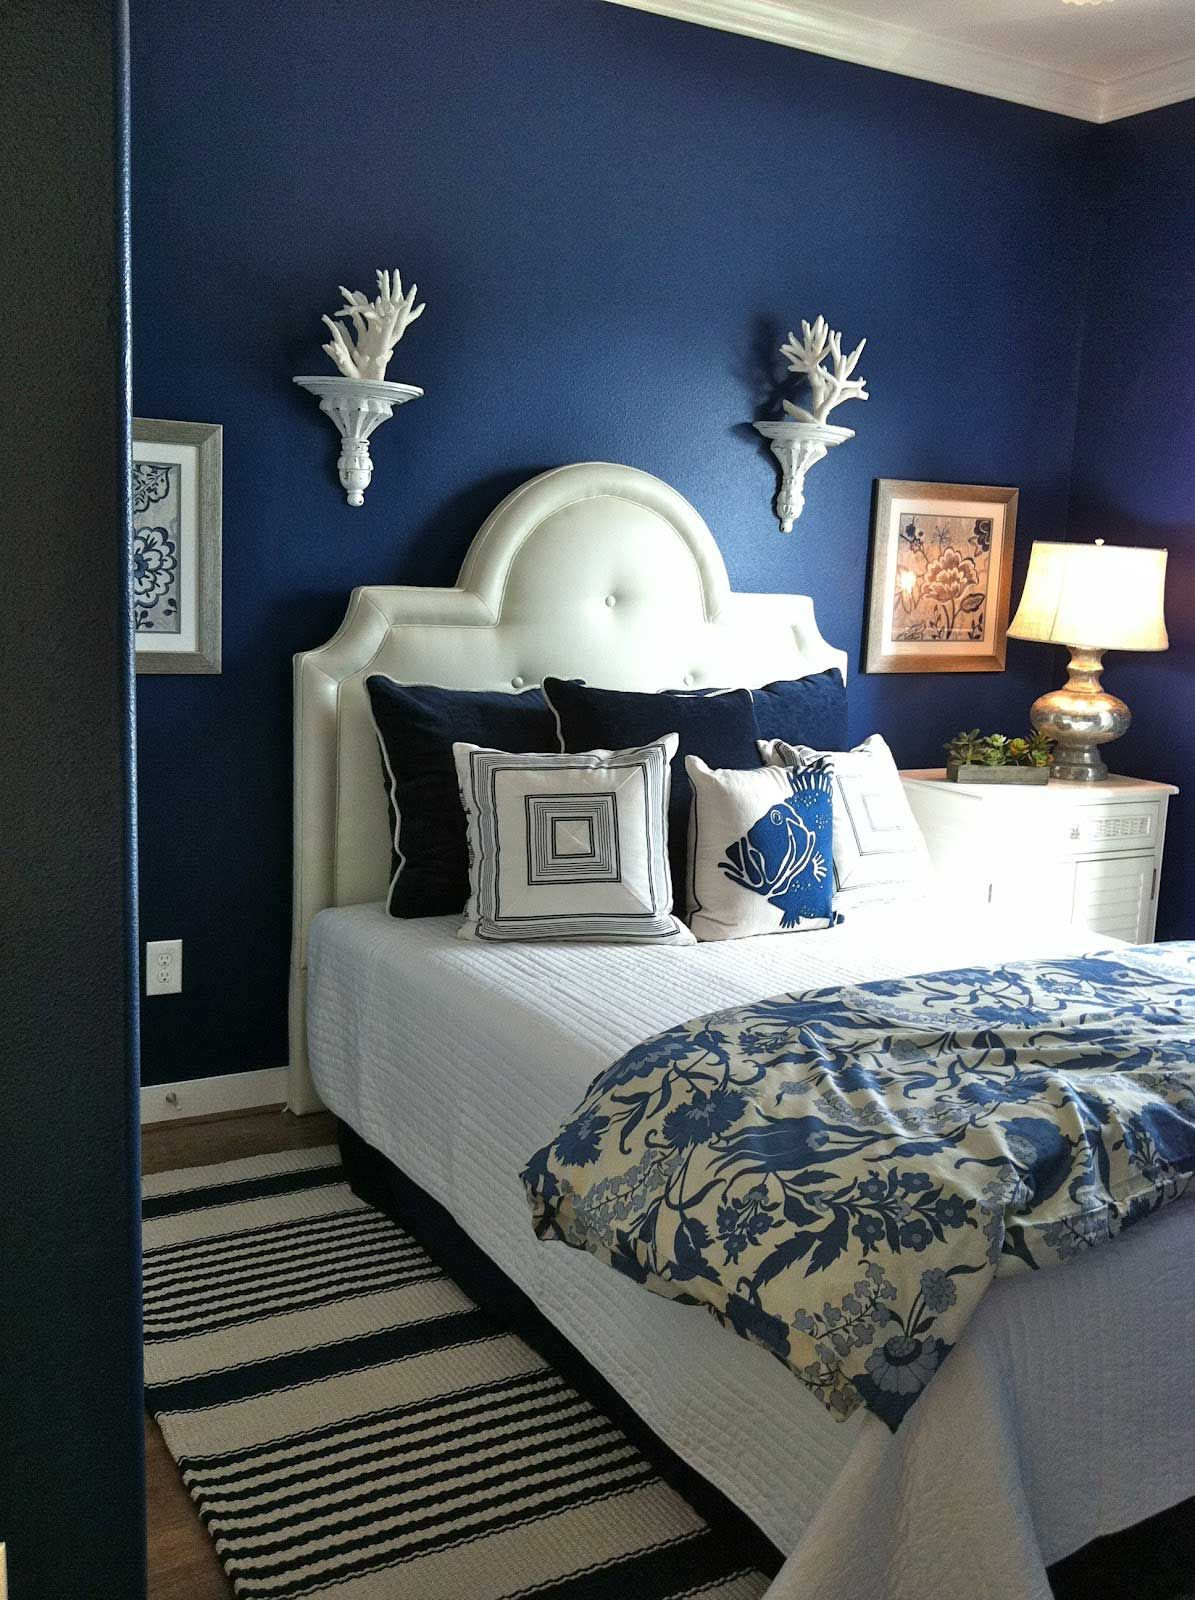 Best Navy Dark Blue Bedroom Design Ideas Pictures Master 400 x 300